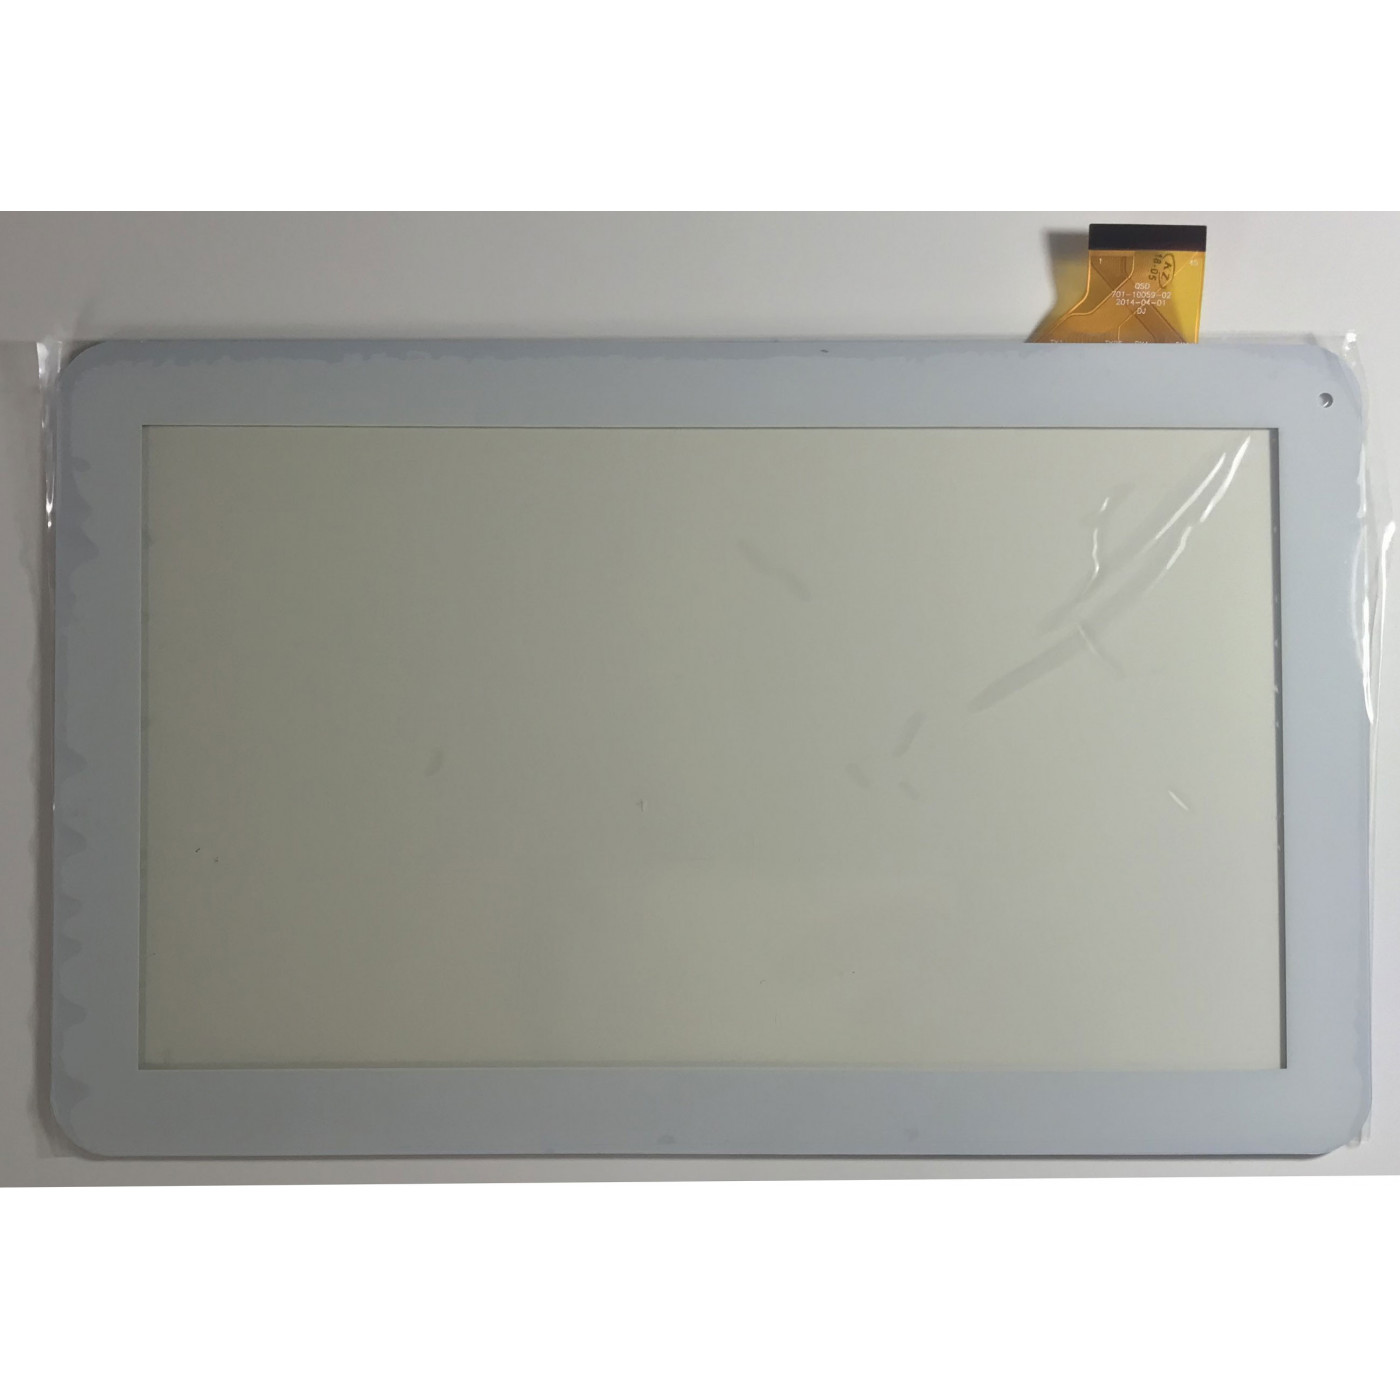 TOUCH SCREEN ARCHOS 101 Kupfer AC101CV 3G Weiß GLASS Digitizer 10.1